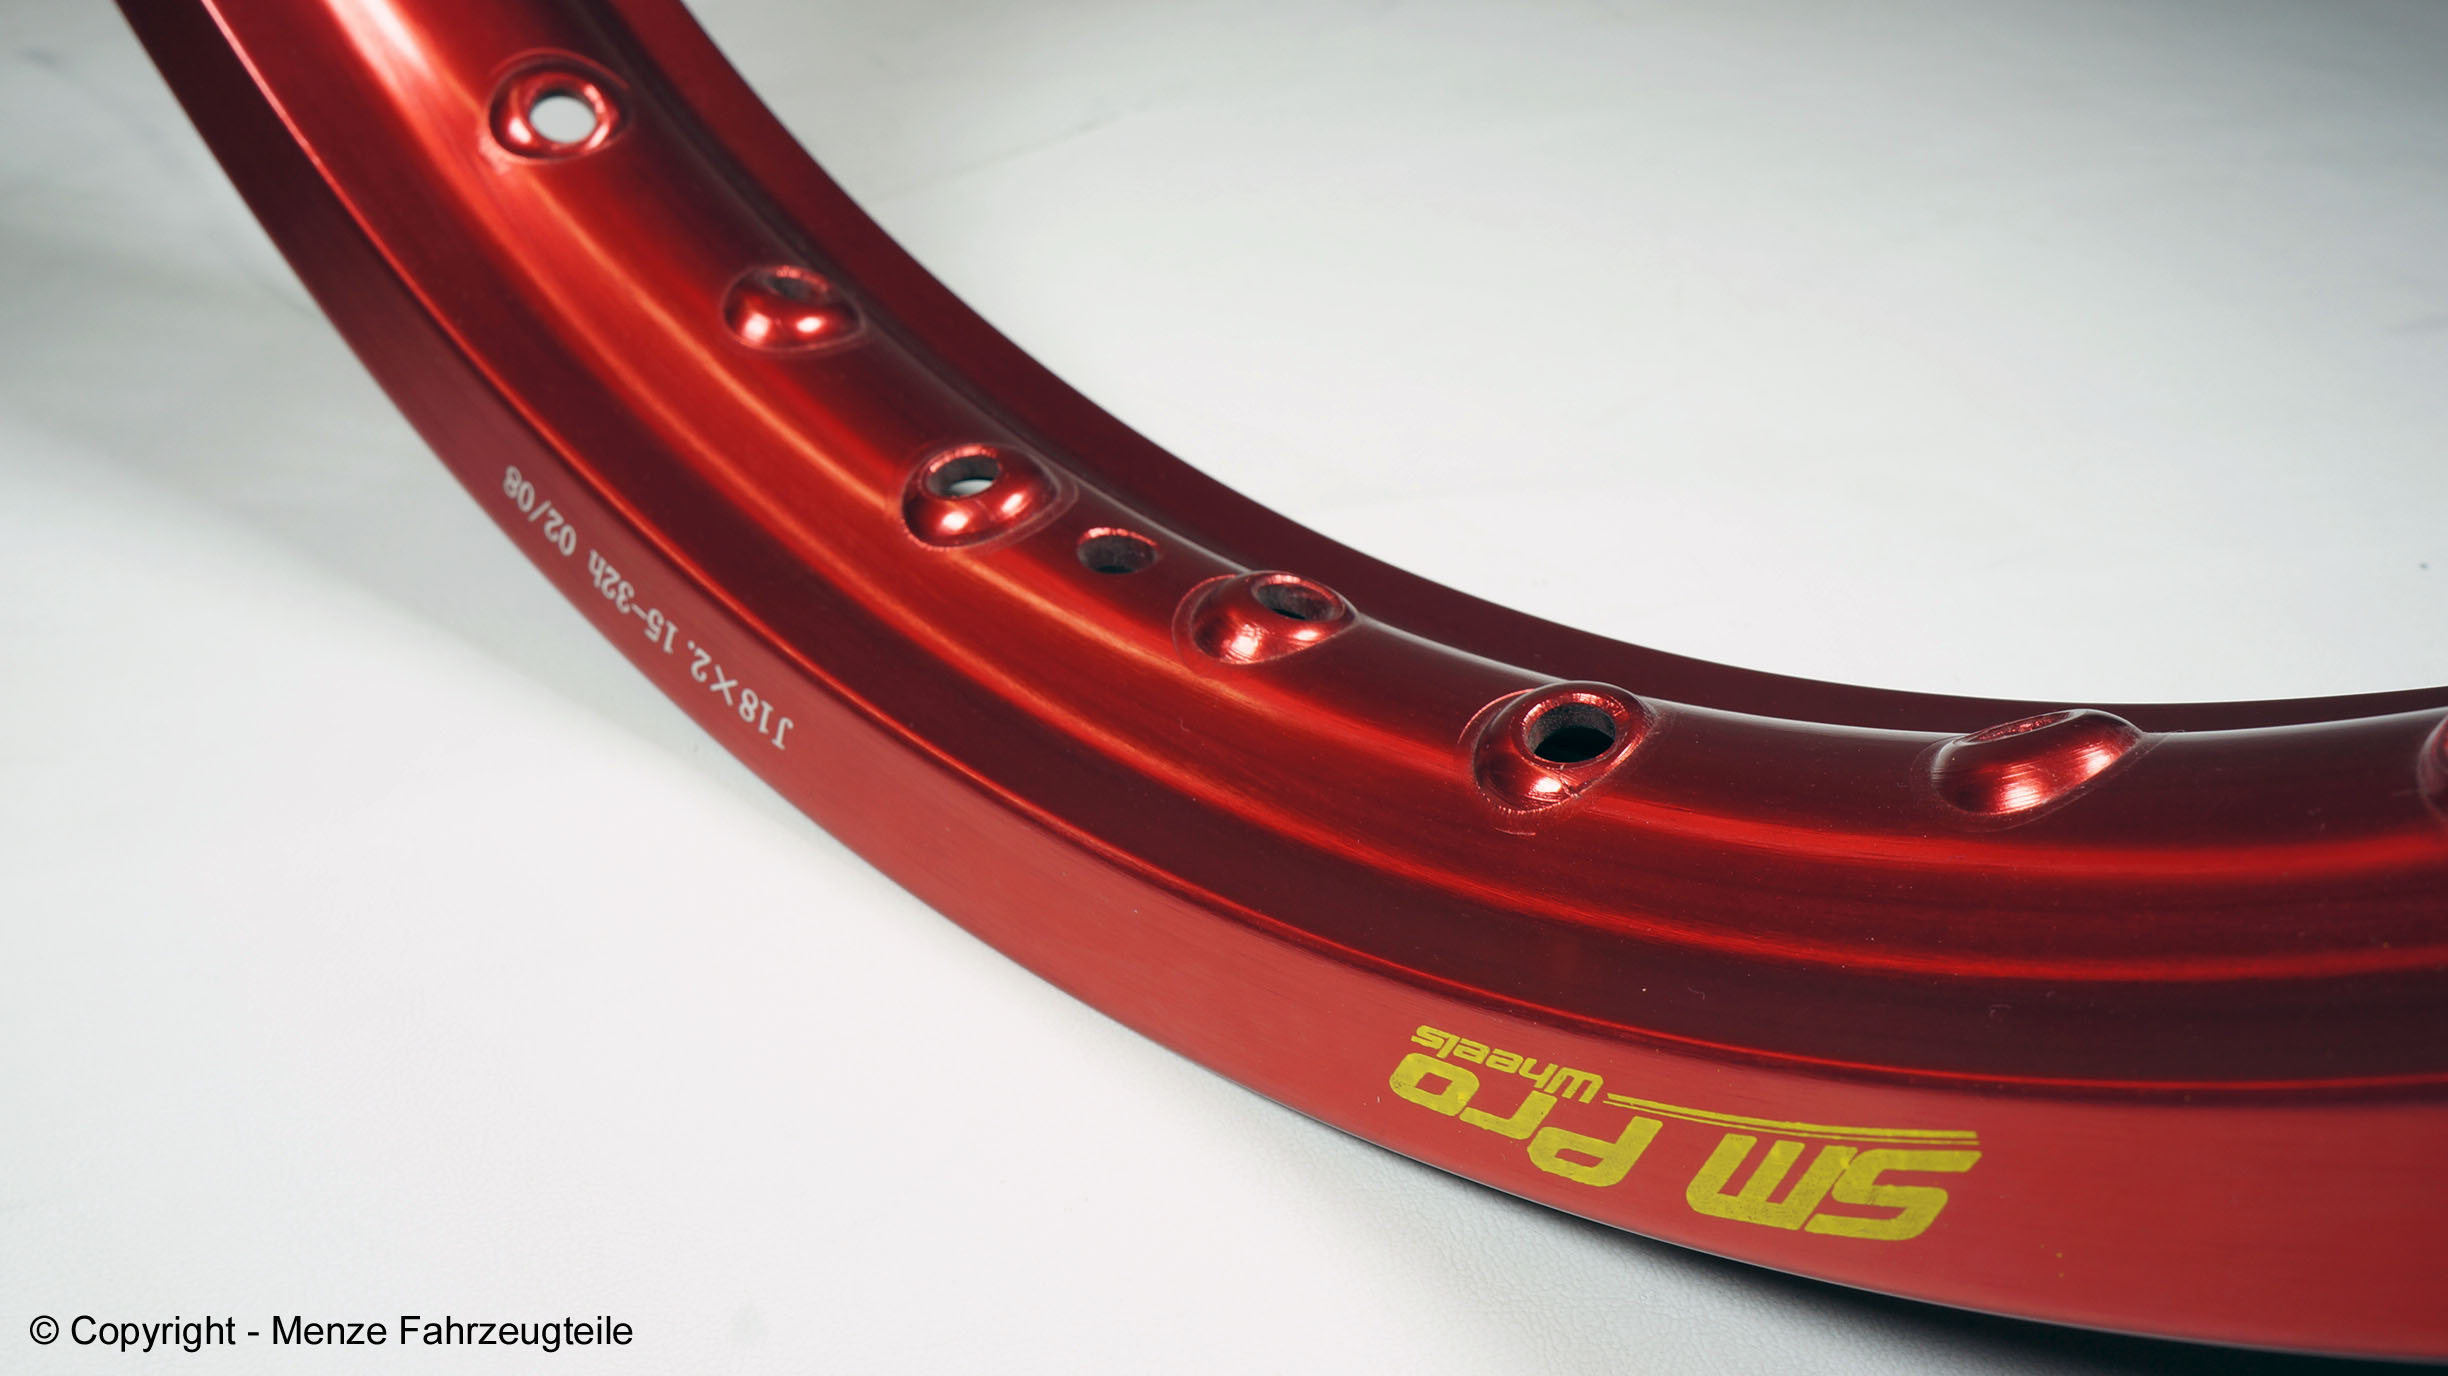 SM Pro Rims in red anodized